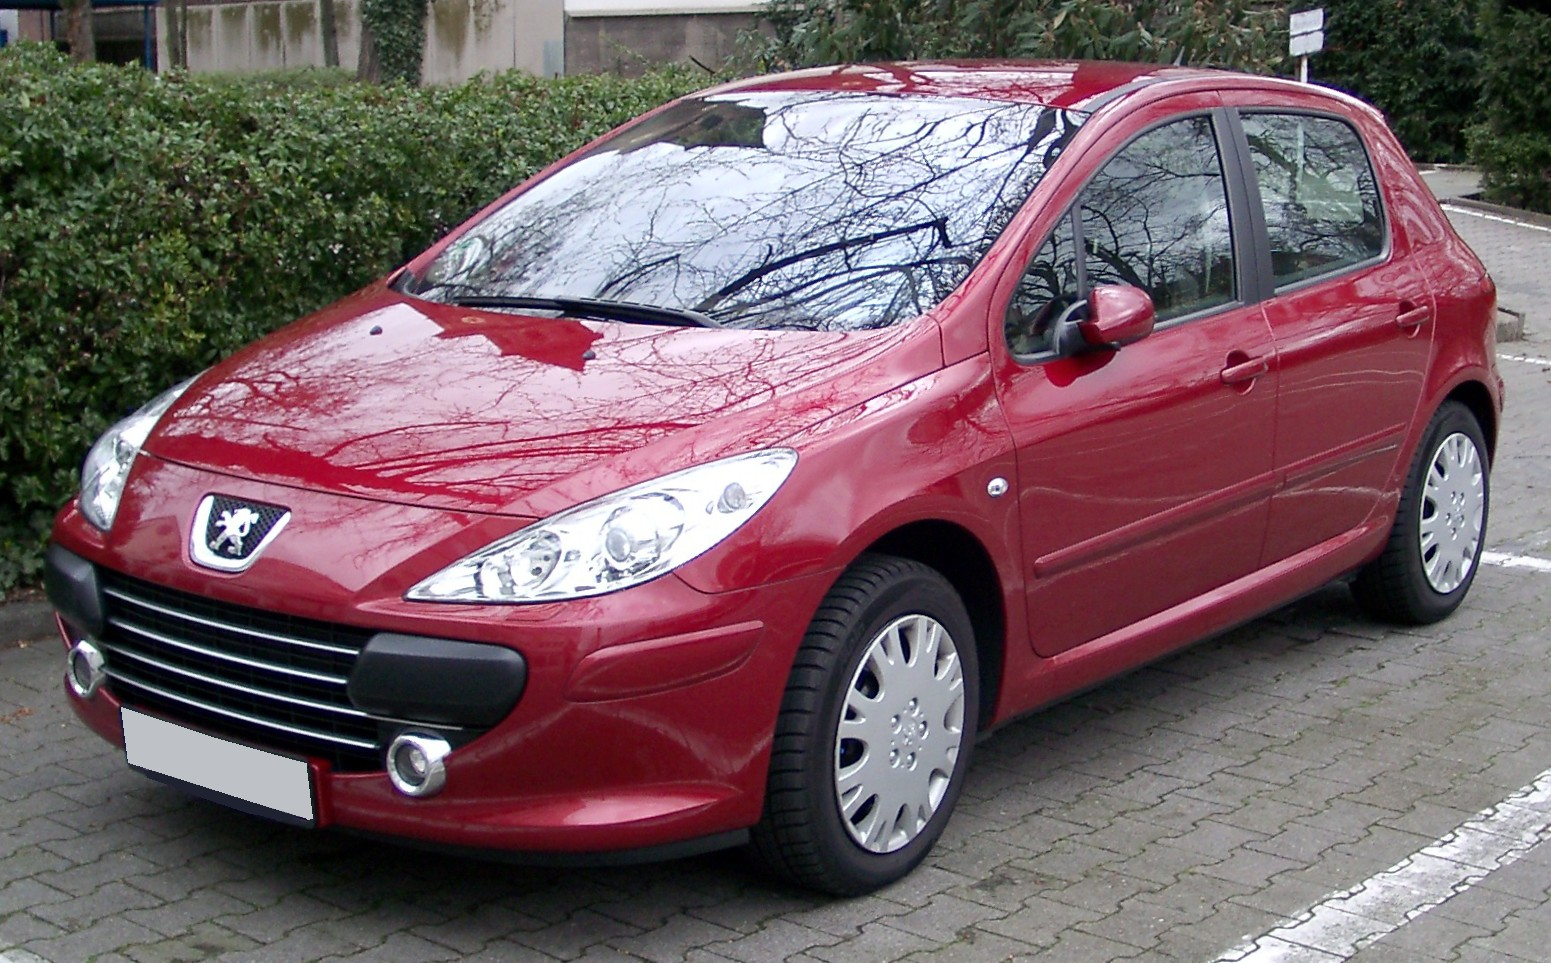 peugeot 307 pictures #14